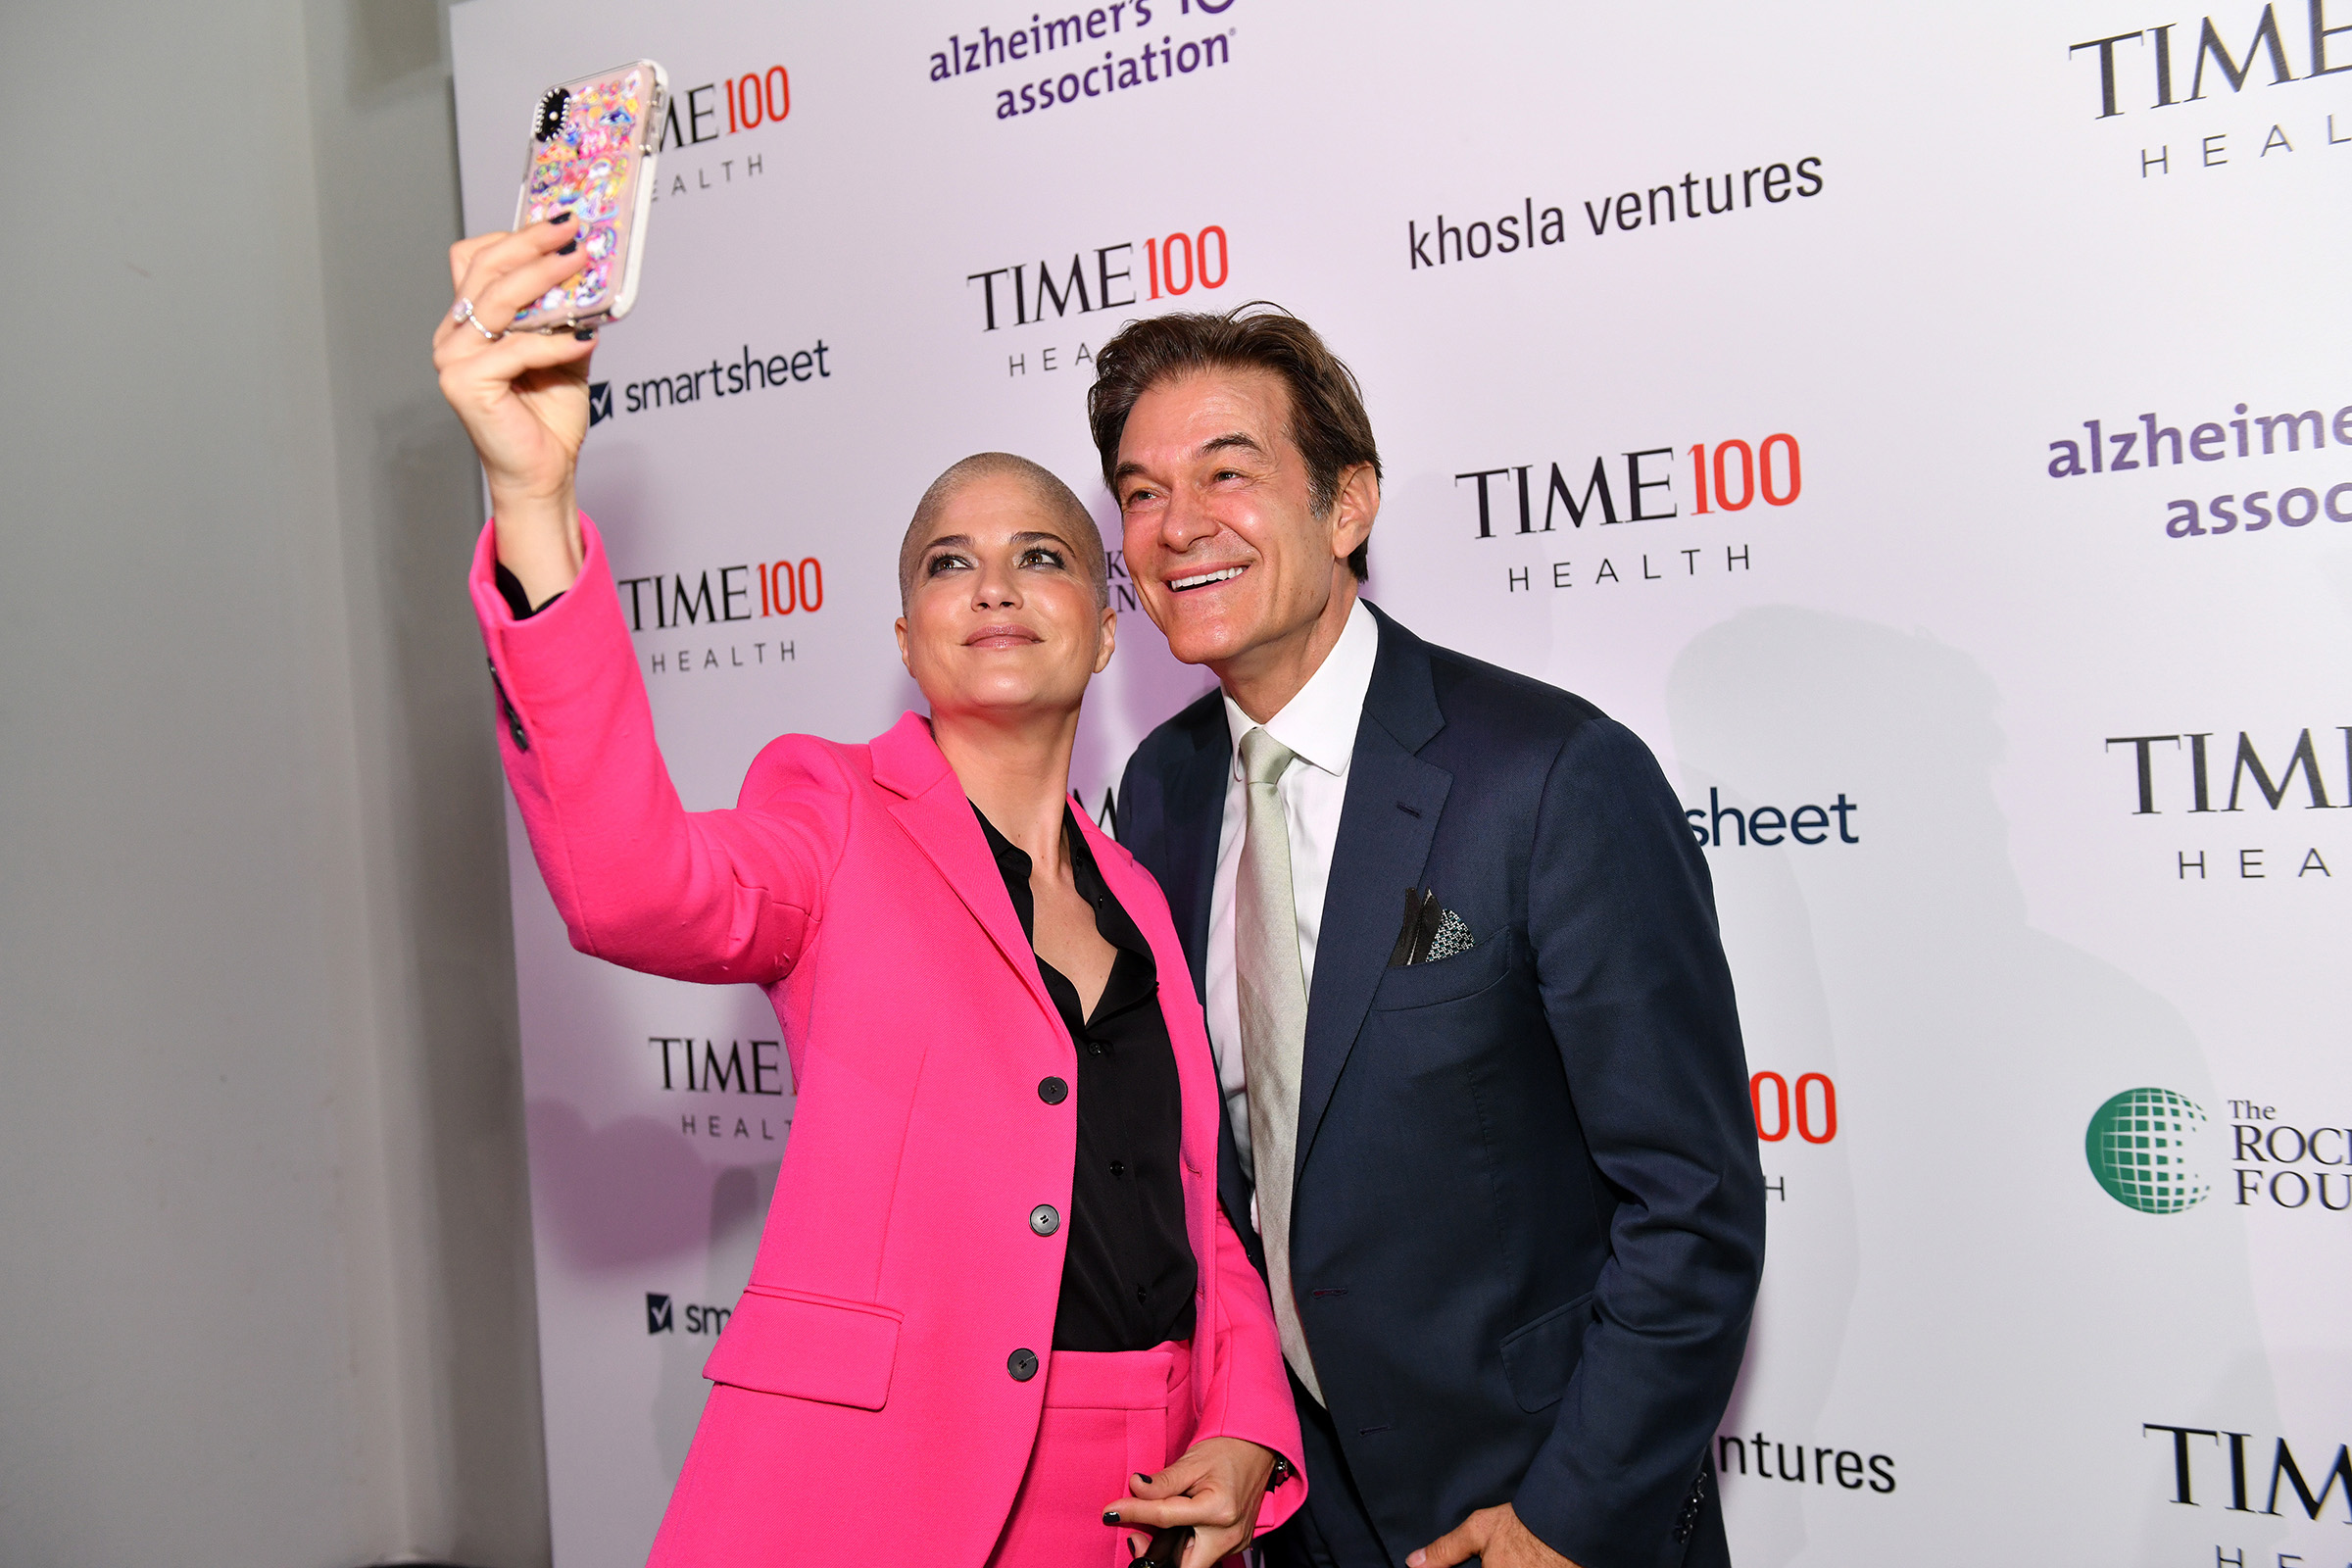 Actor Selma Blair (L) and and Dr. Mehmet Oz arrive at the TIME 100 Health Summit at Pier 17 in New York City on Oct. 17, 2019.